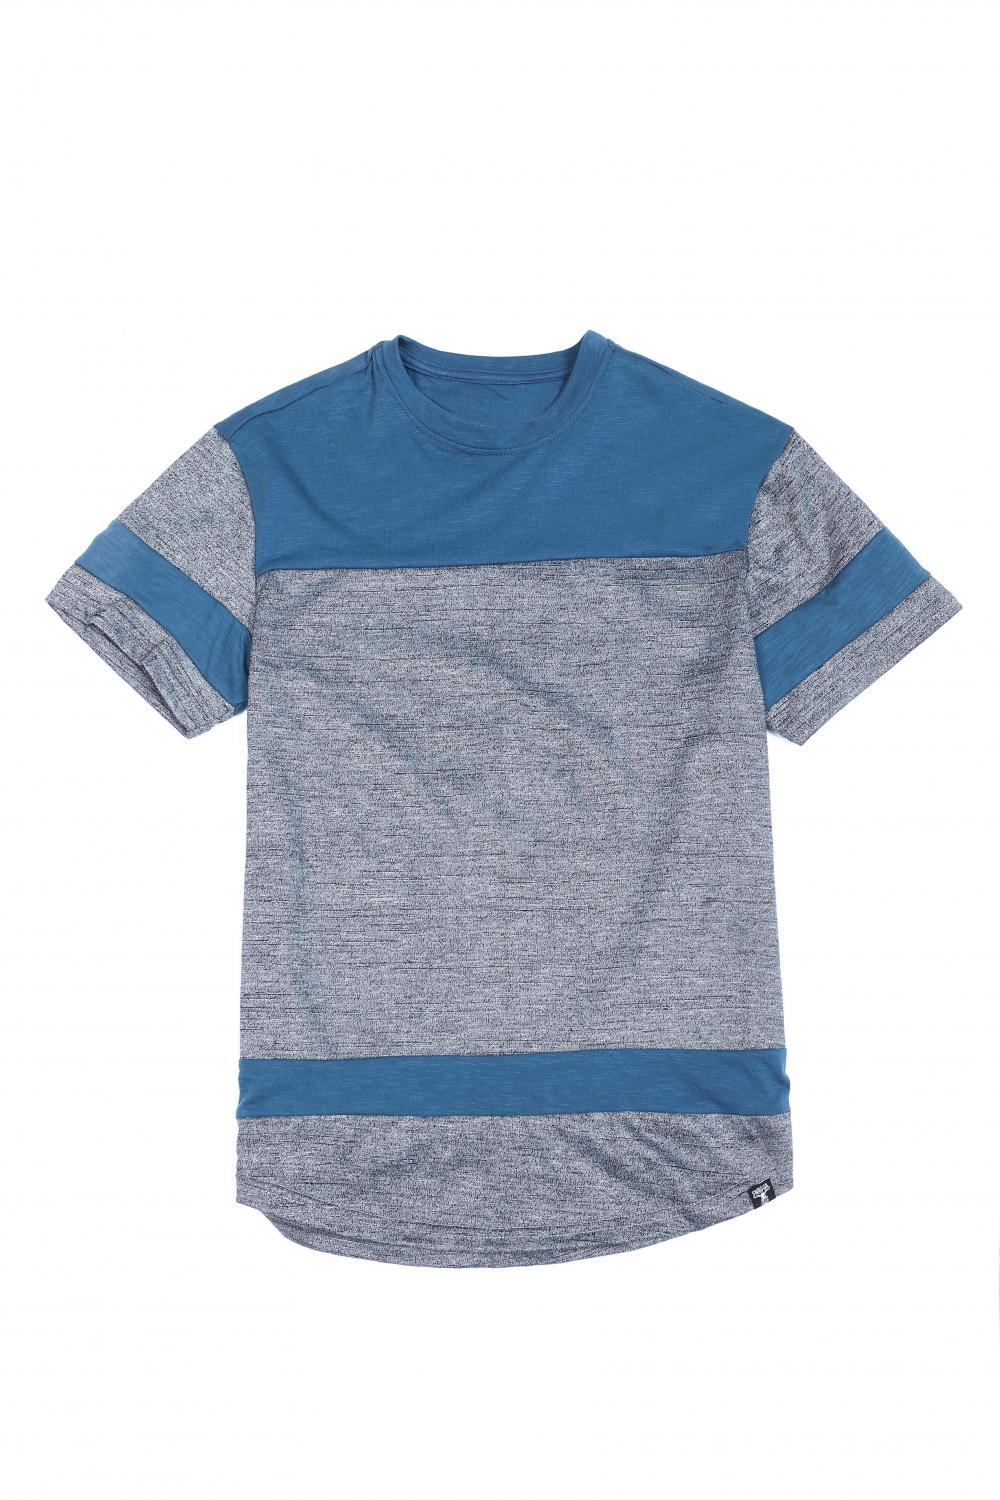 Men's Fashion T shirts